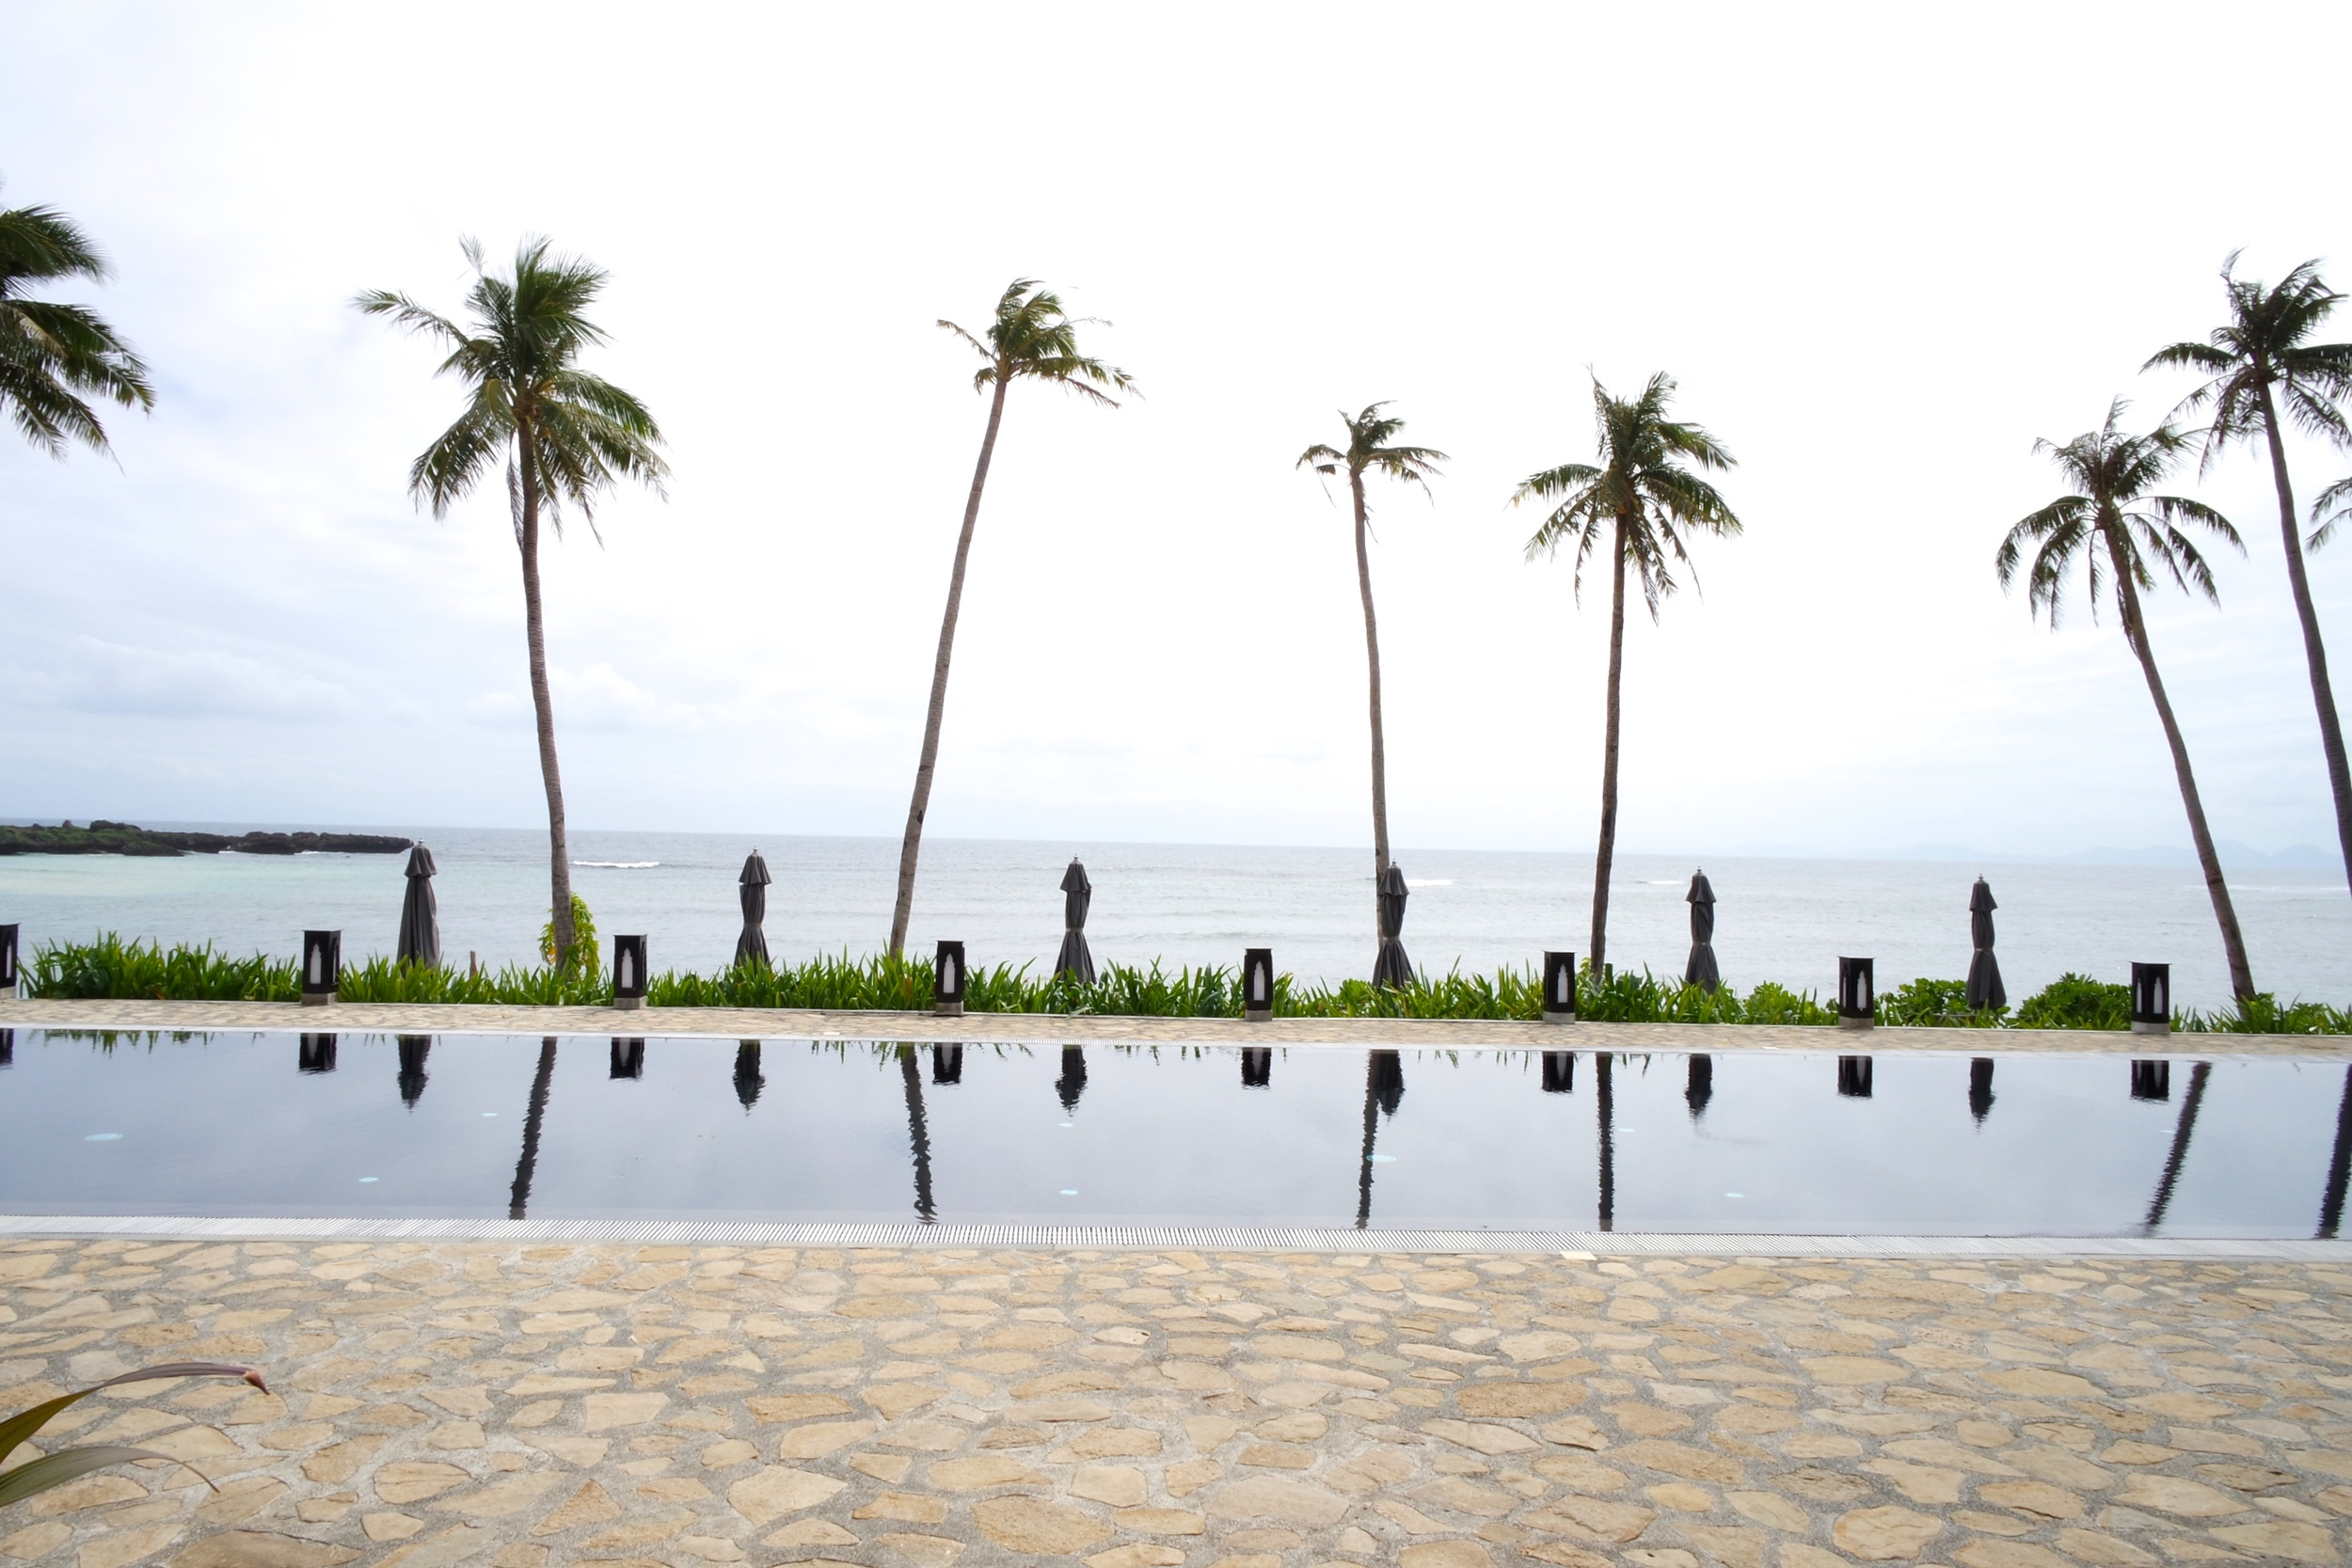 The pool by Phuket.